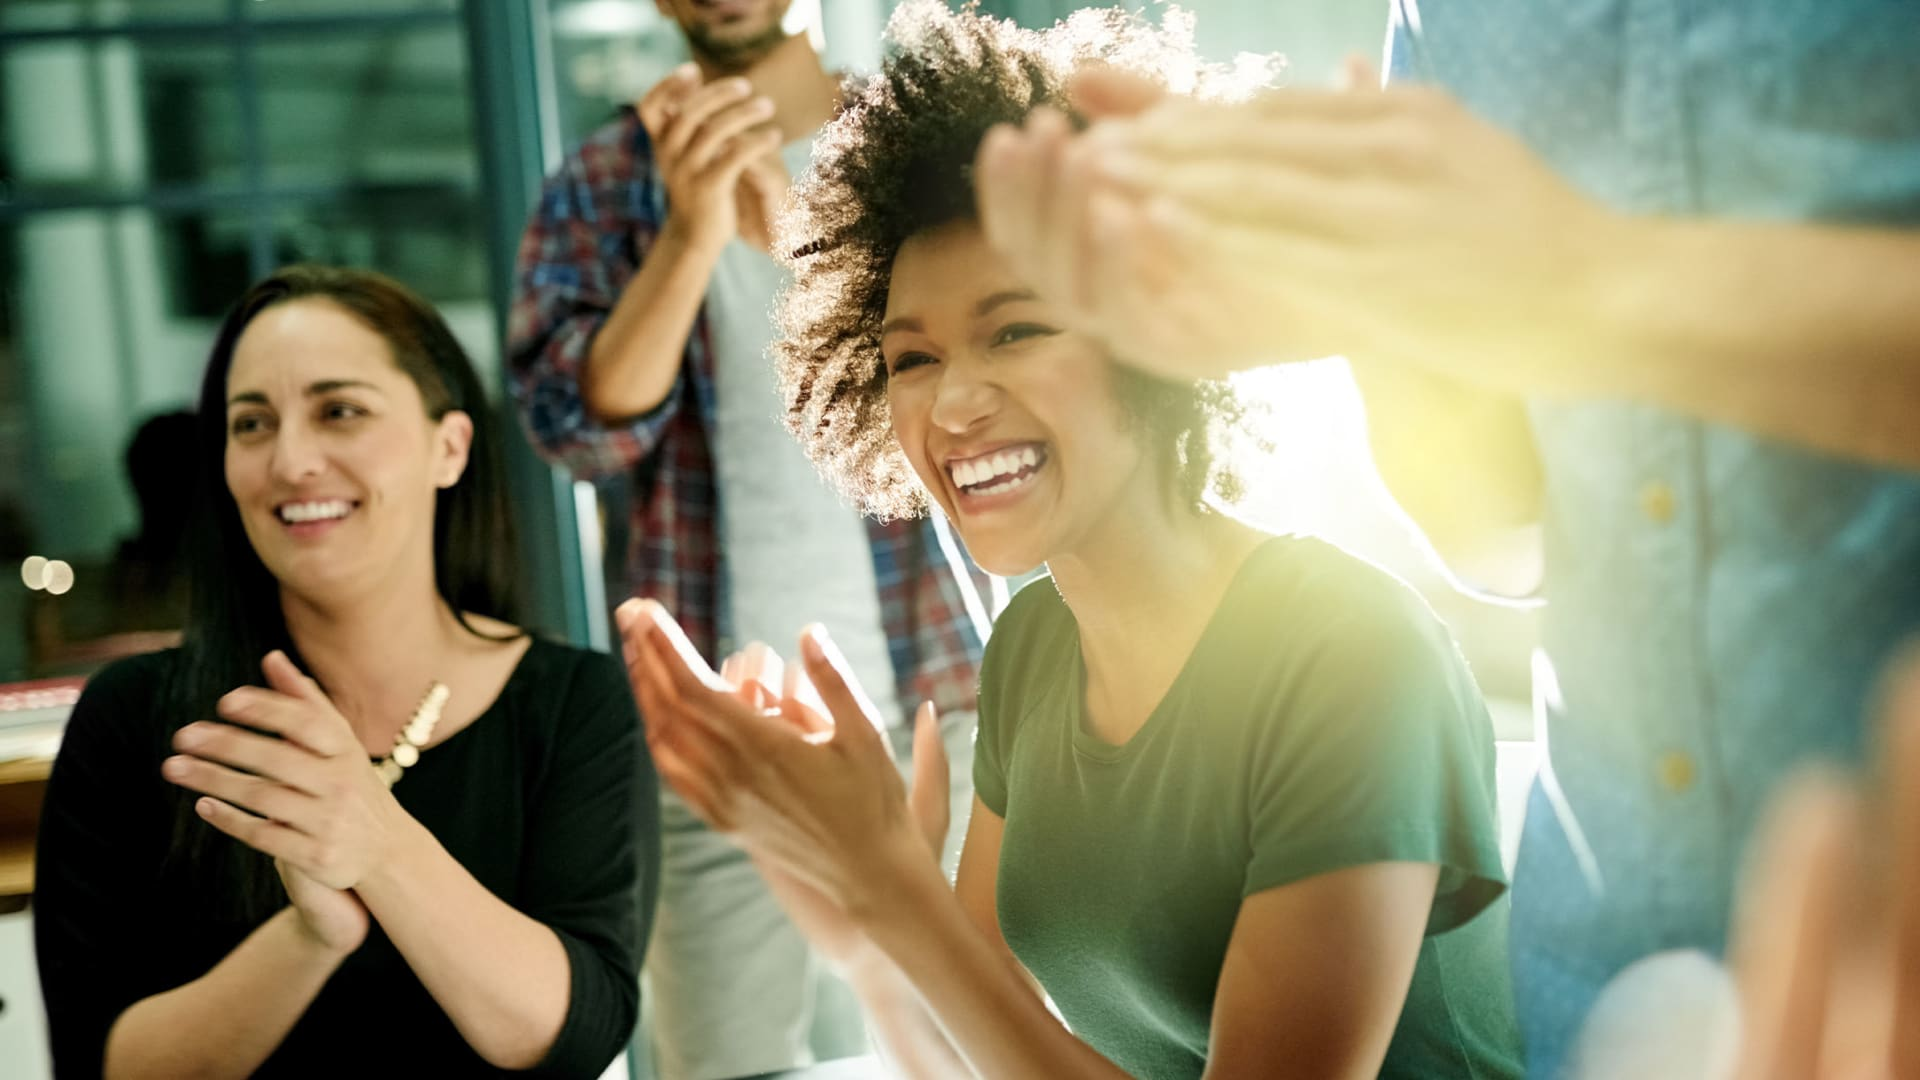 4 Actionable Ways to Foster an Inclusive, Creative Environment